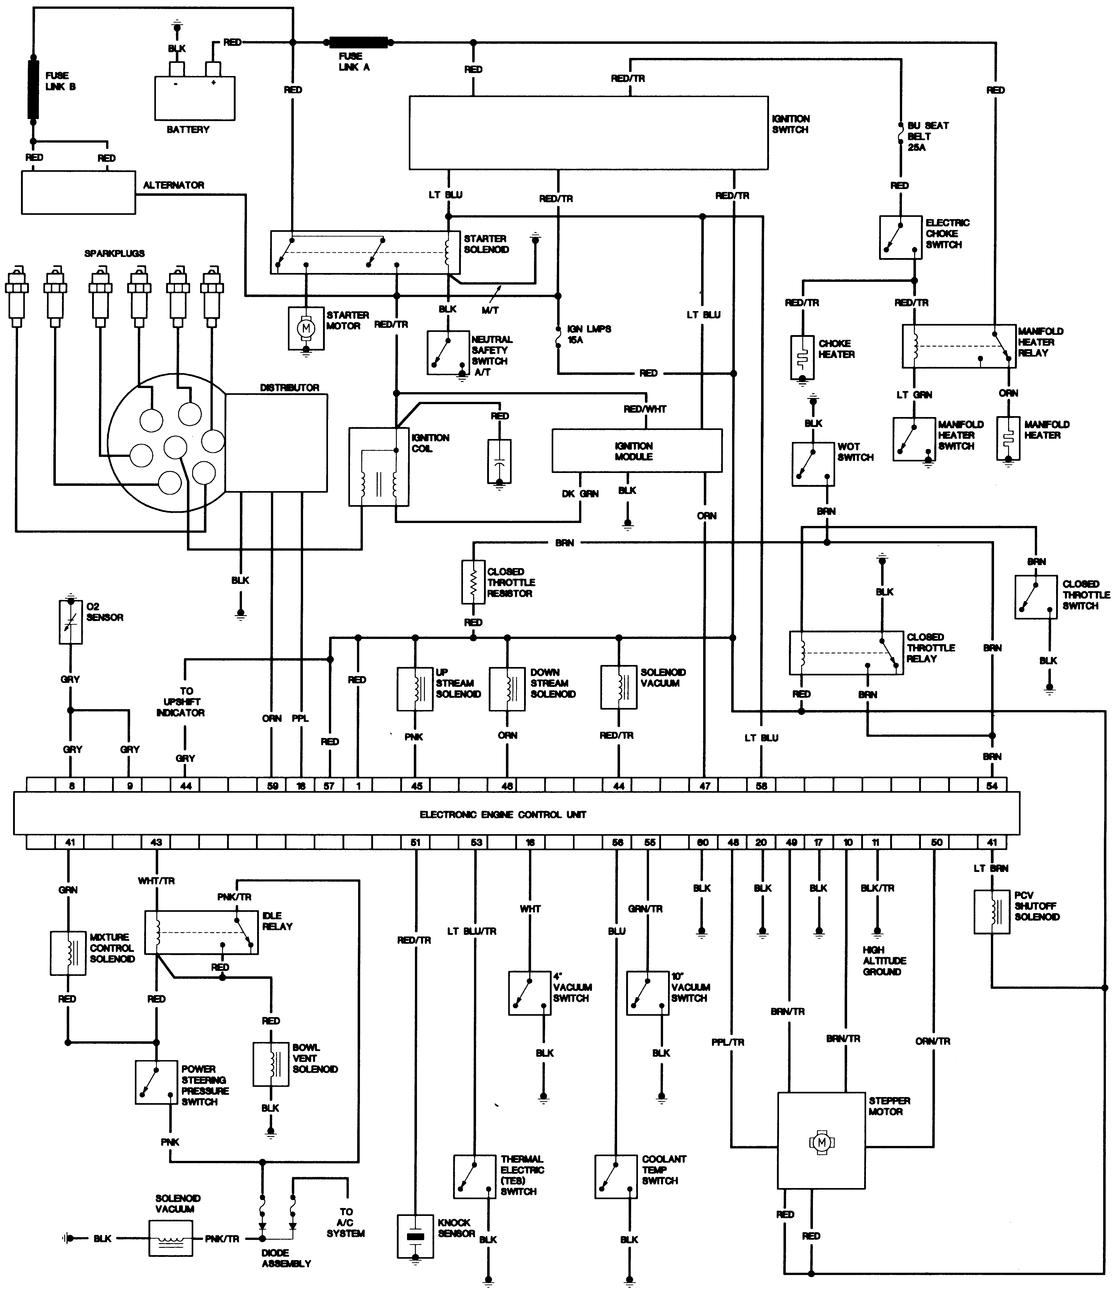 Water Hose Piping as well Index likewise Fuel System Diagram further Rockford Fosgate P3 Wiring Diagram together with 2000. on nissan schematic diagram